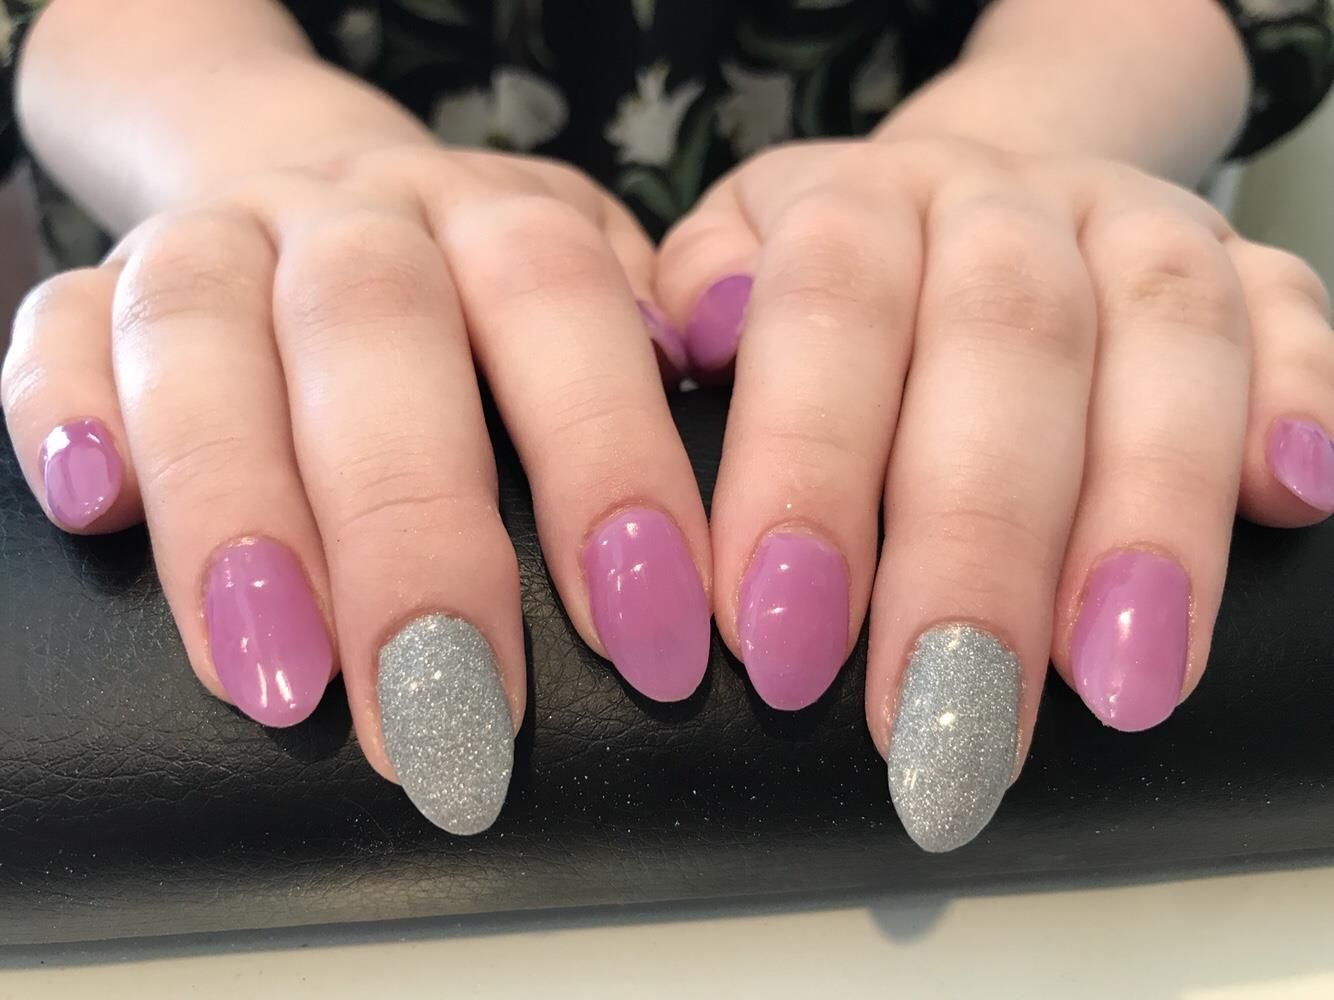 Anc Manicure 30 Anc Manicure With Tips Pedicure Nail Art Manicure Manicure And Pedicure